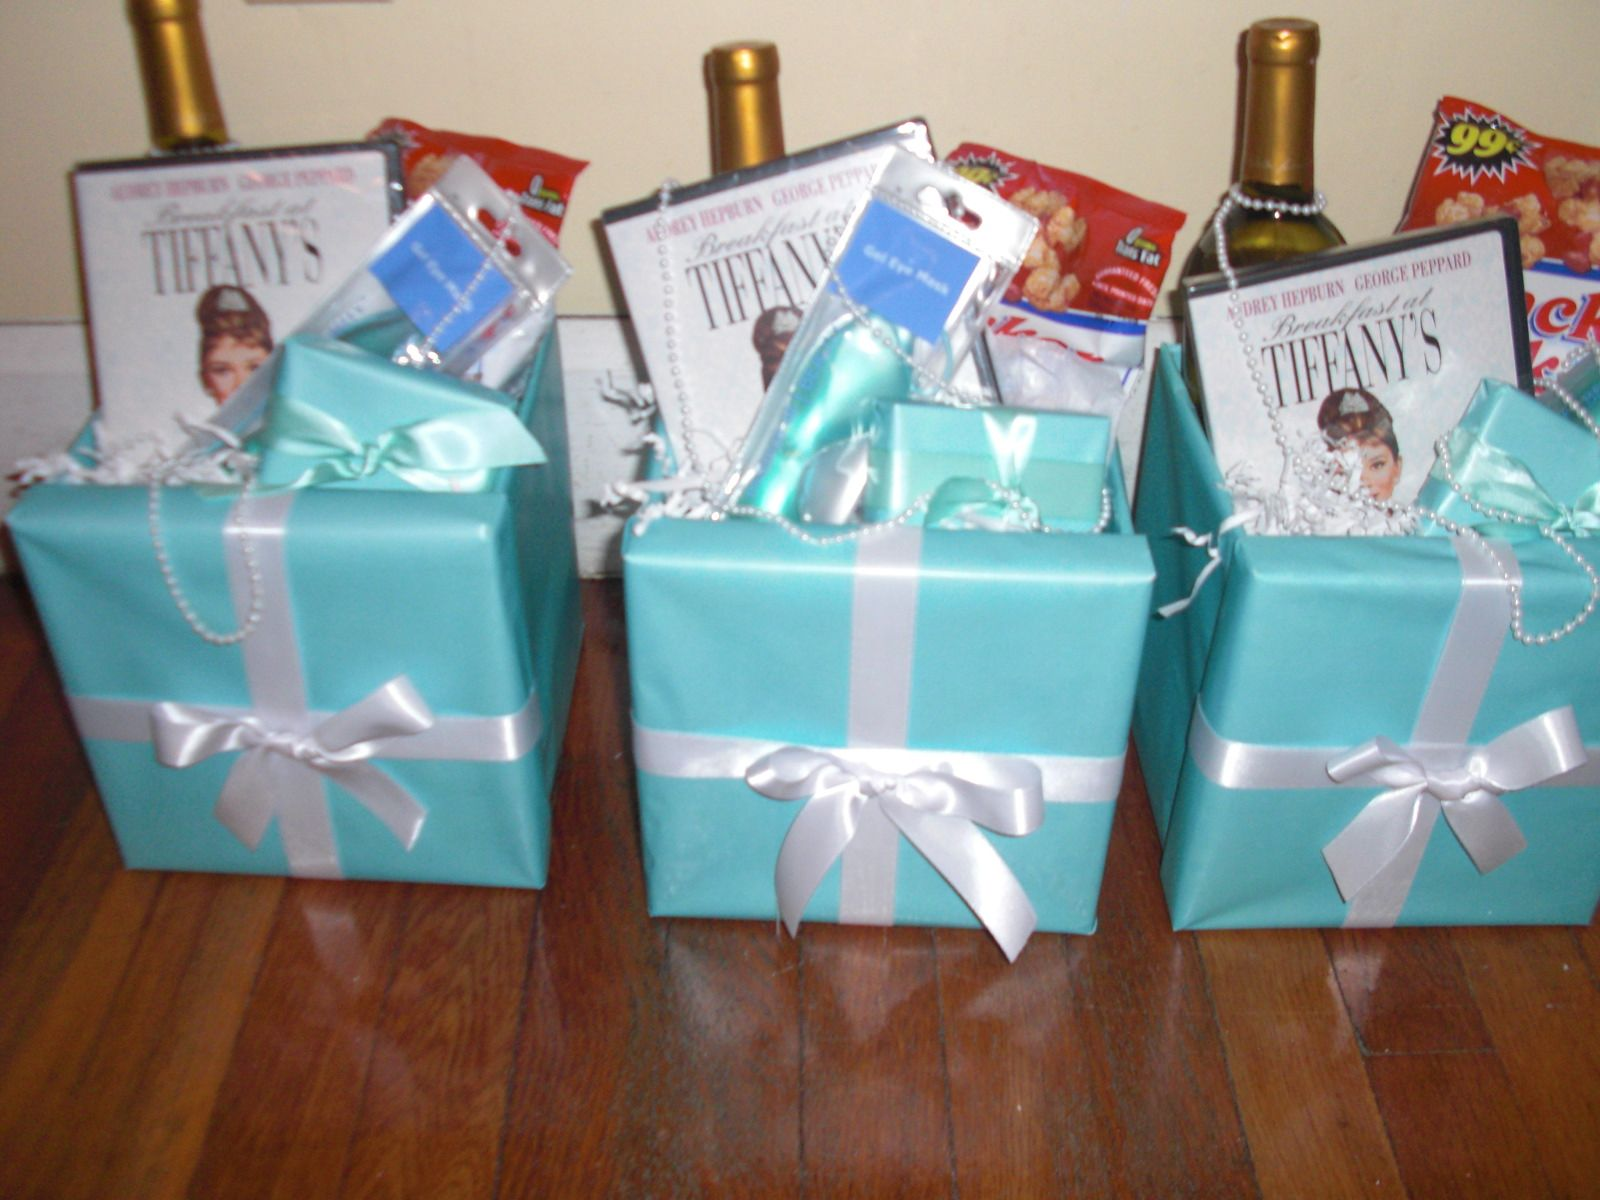 Wedding Goodie Bags Ideas : wedding stuff dream wedding wedding ideas blue wedding wedding bells ...